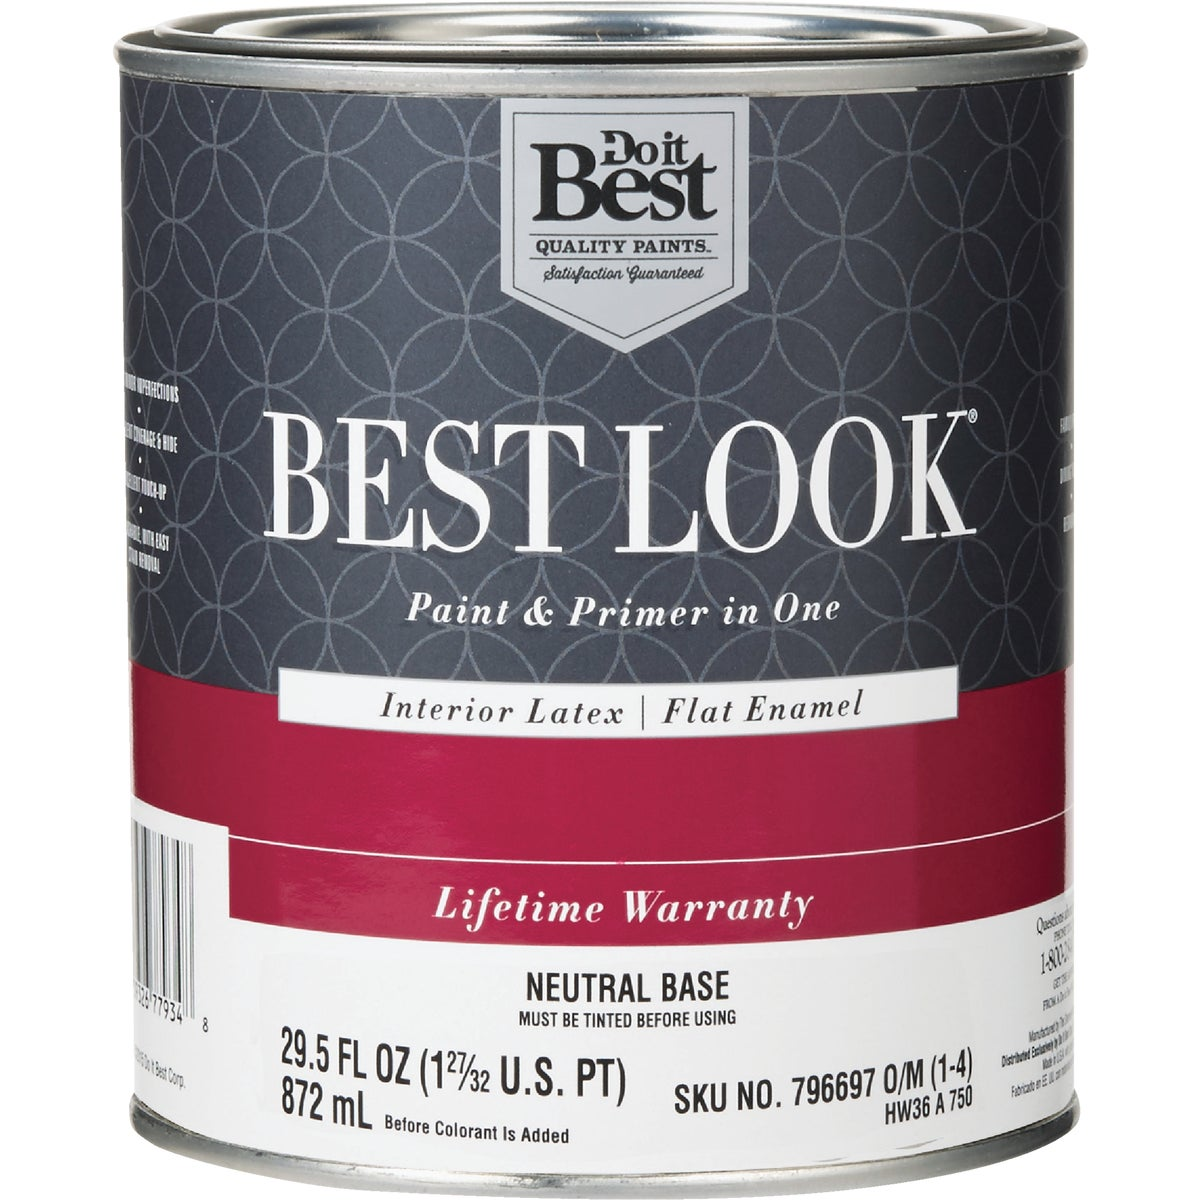 INT FLAT NEUTRL BS PAINT - HW36A0750-14 by Do it Best